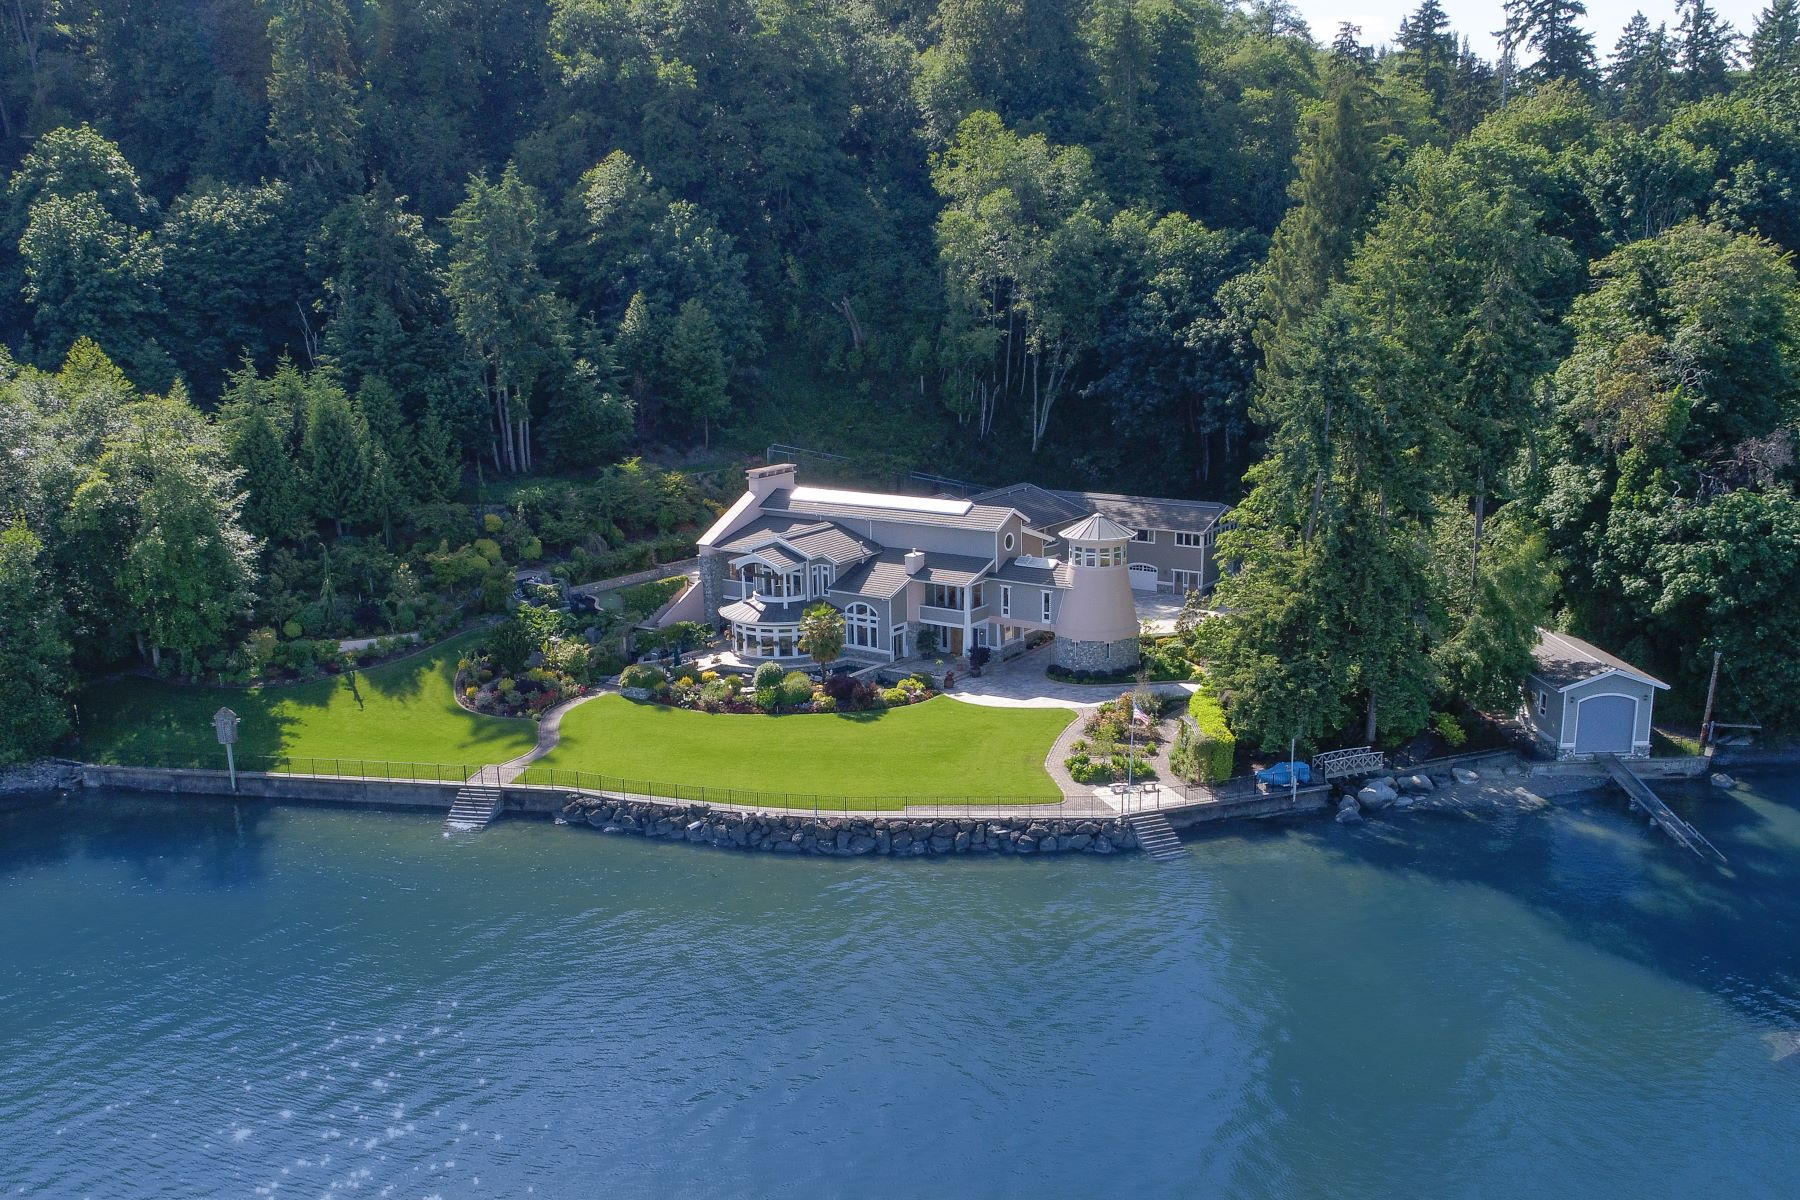 独户住宅 为 销售 在 Private Palatial Waterfront 8415 SW Soper Road Vashon, 华盛顿州 98070 美国